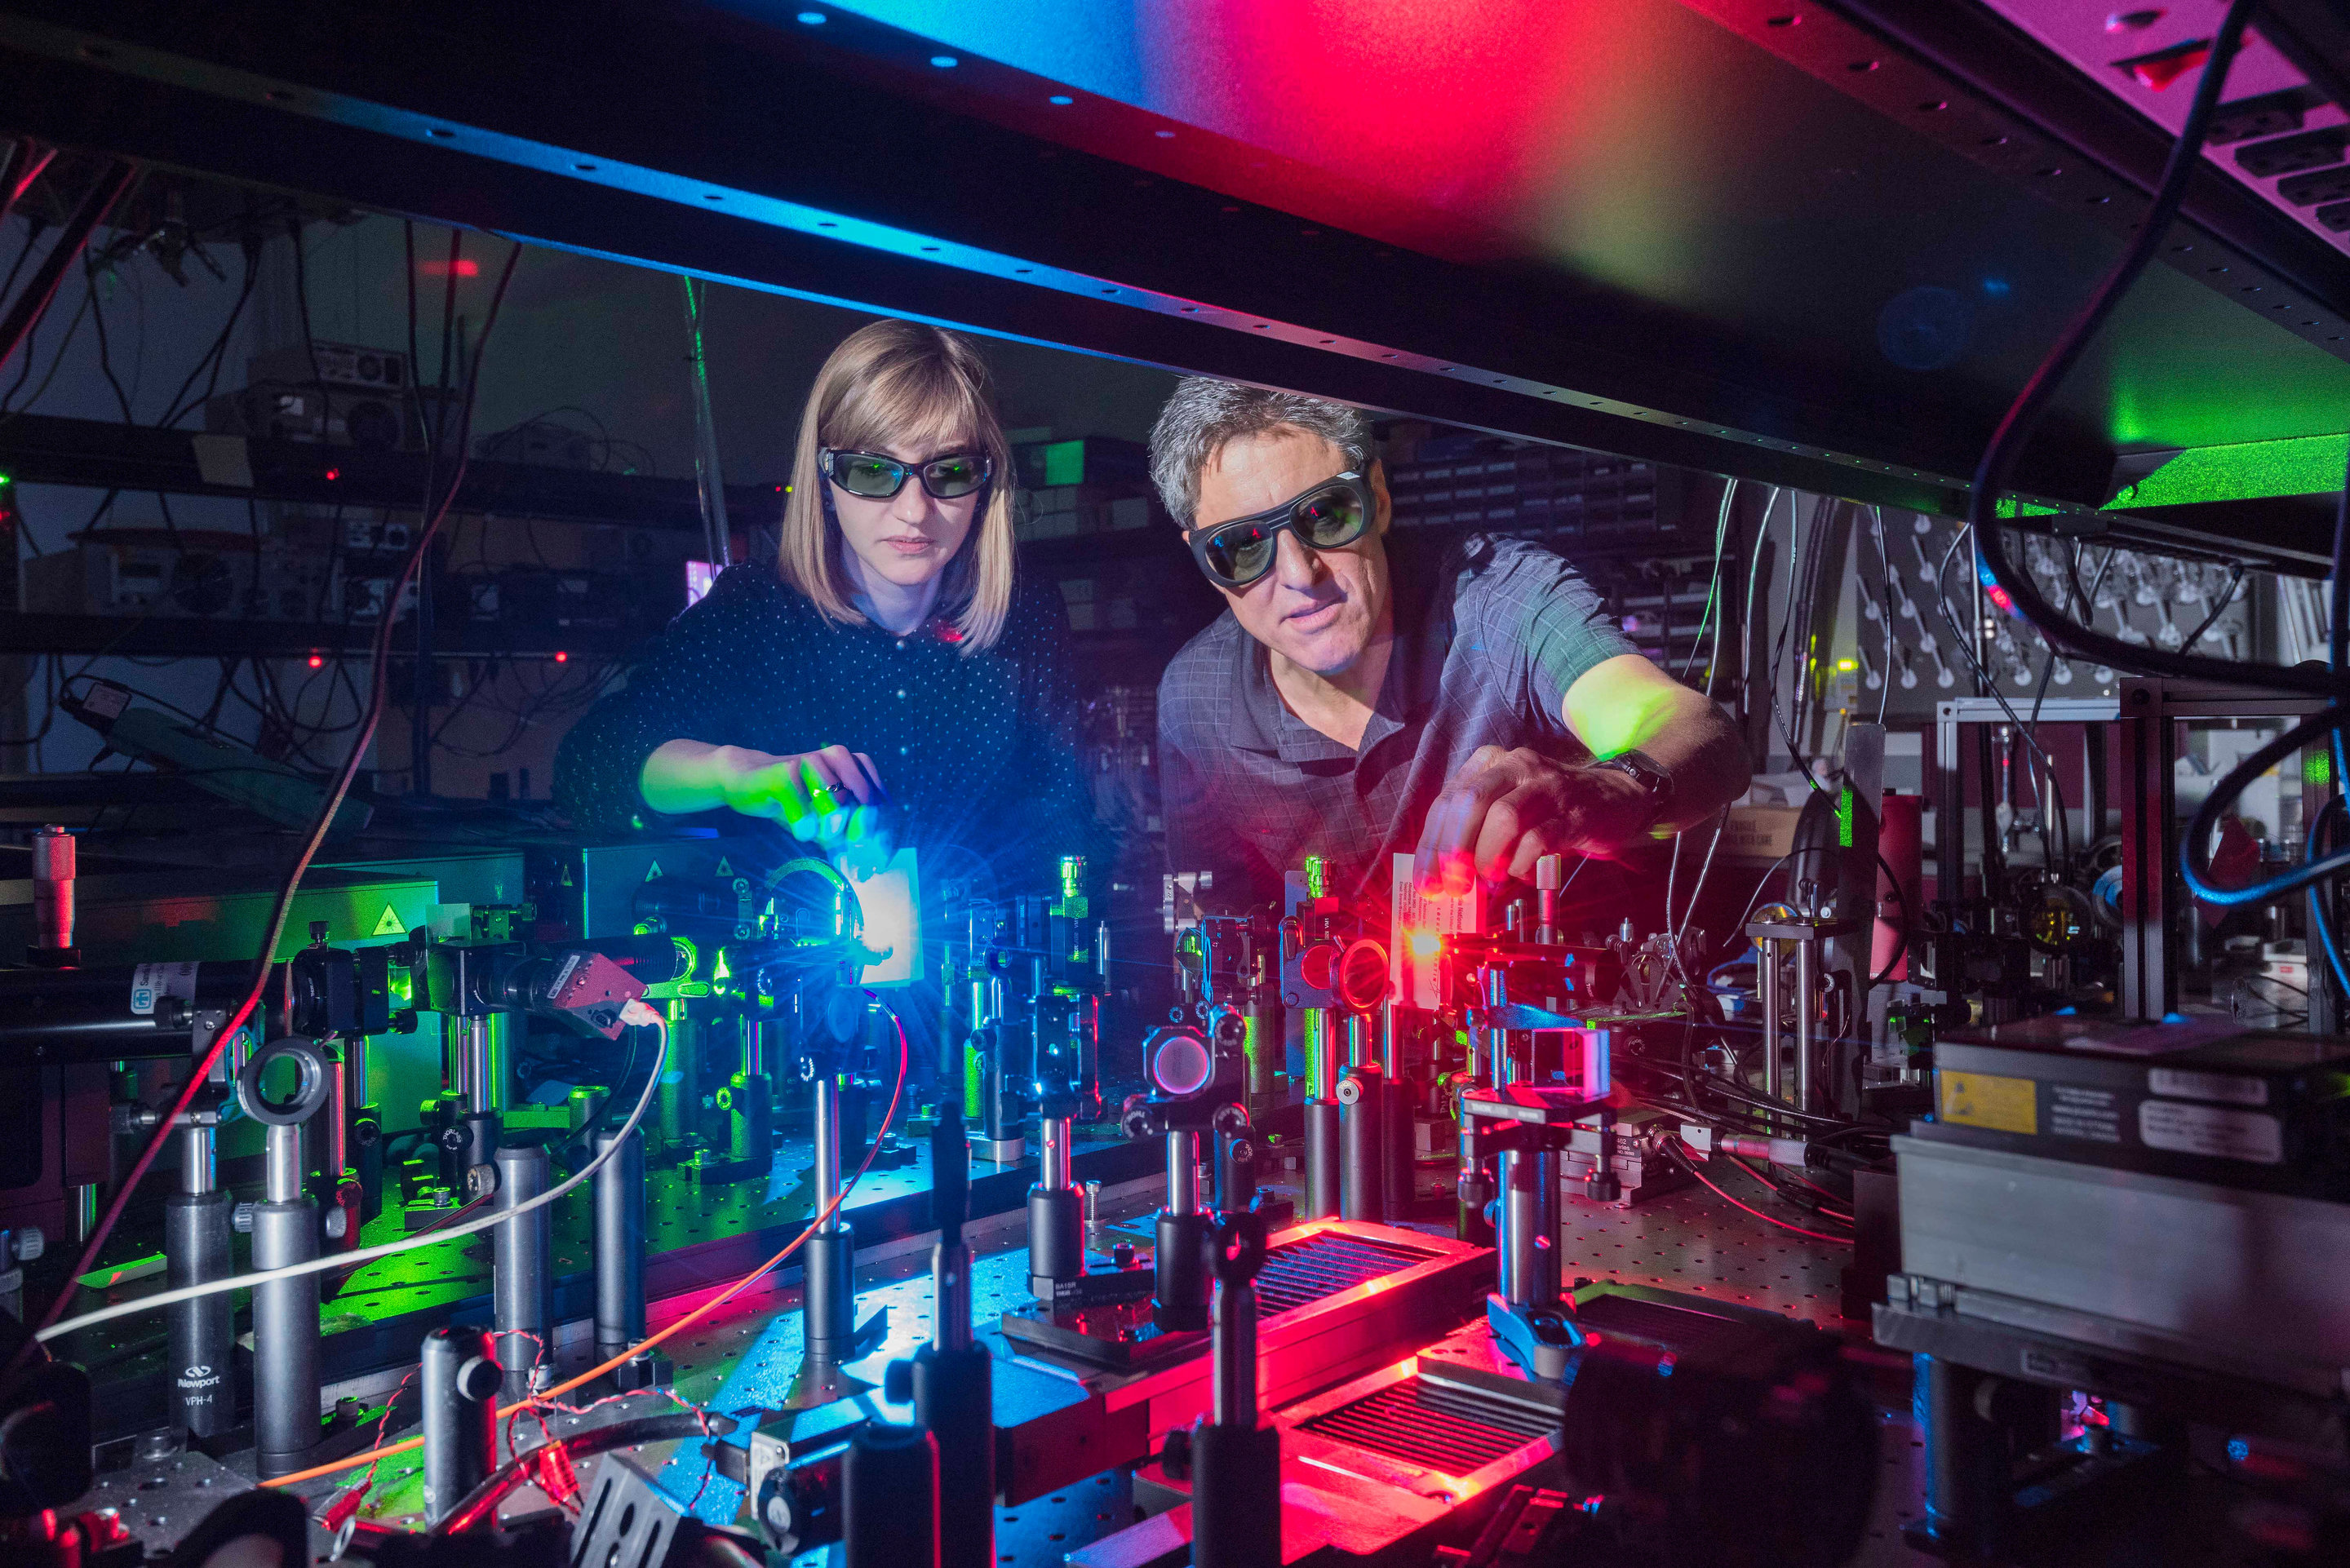 Researchers Report First Nanostructured Material For Broad Mixing Of Theus Green Laser Pointer Light Waves